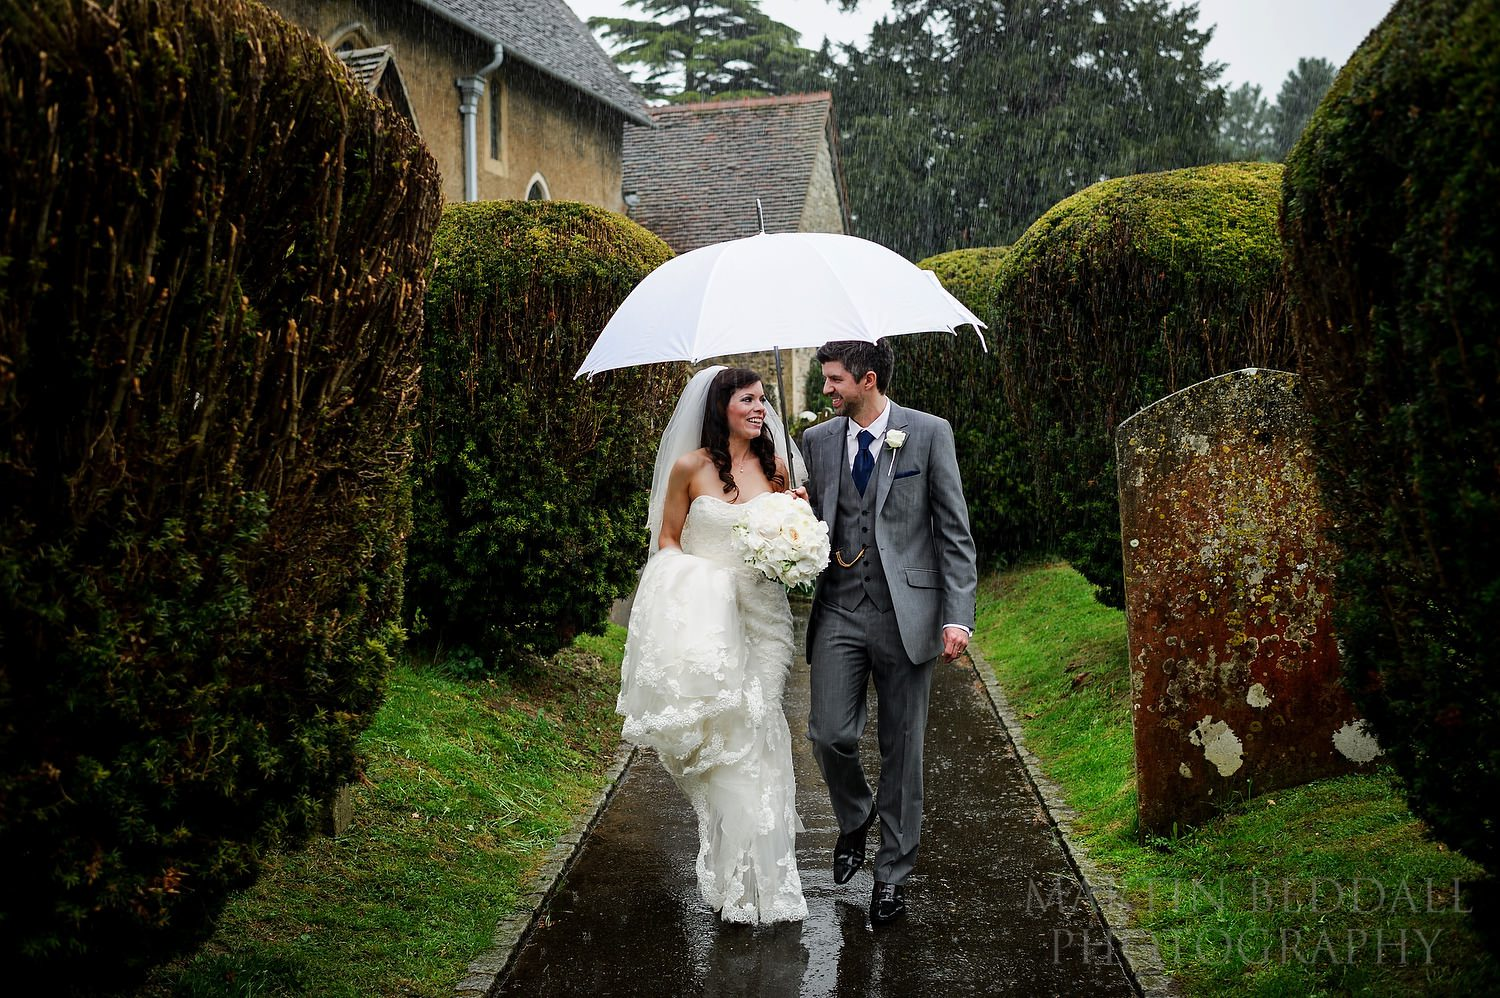 wet wedding - Heavy rain greets the bride and groom